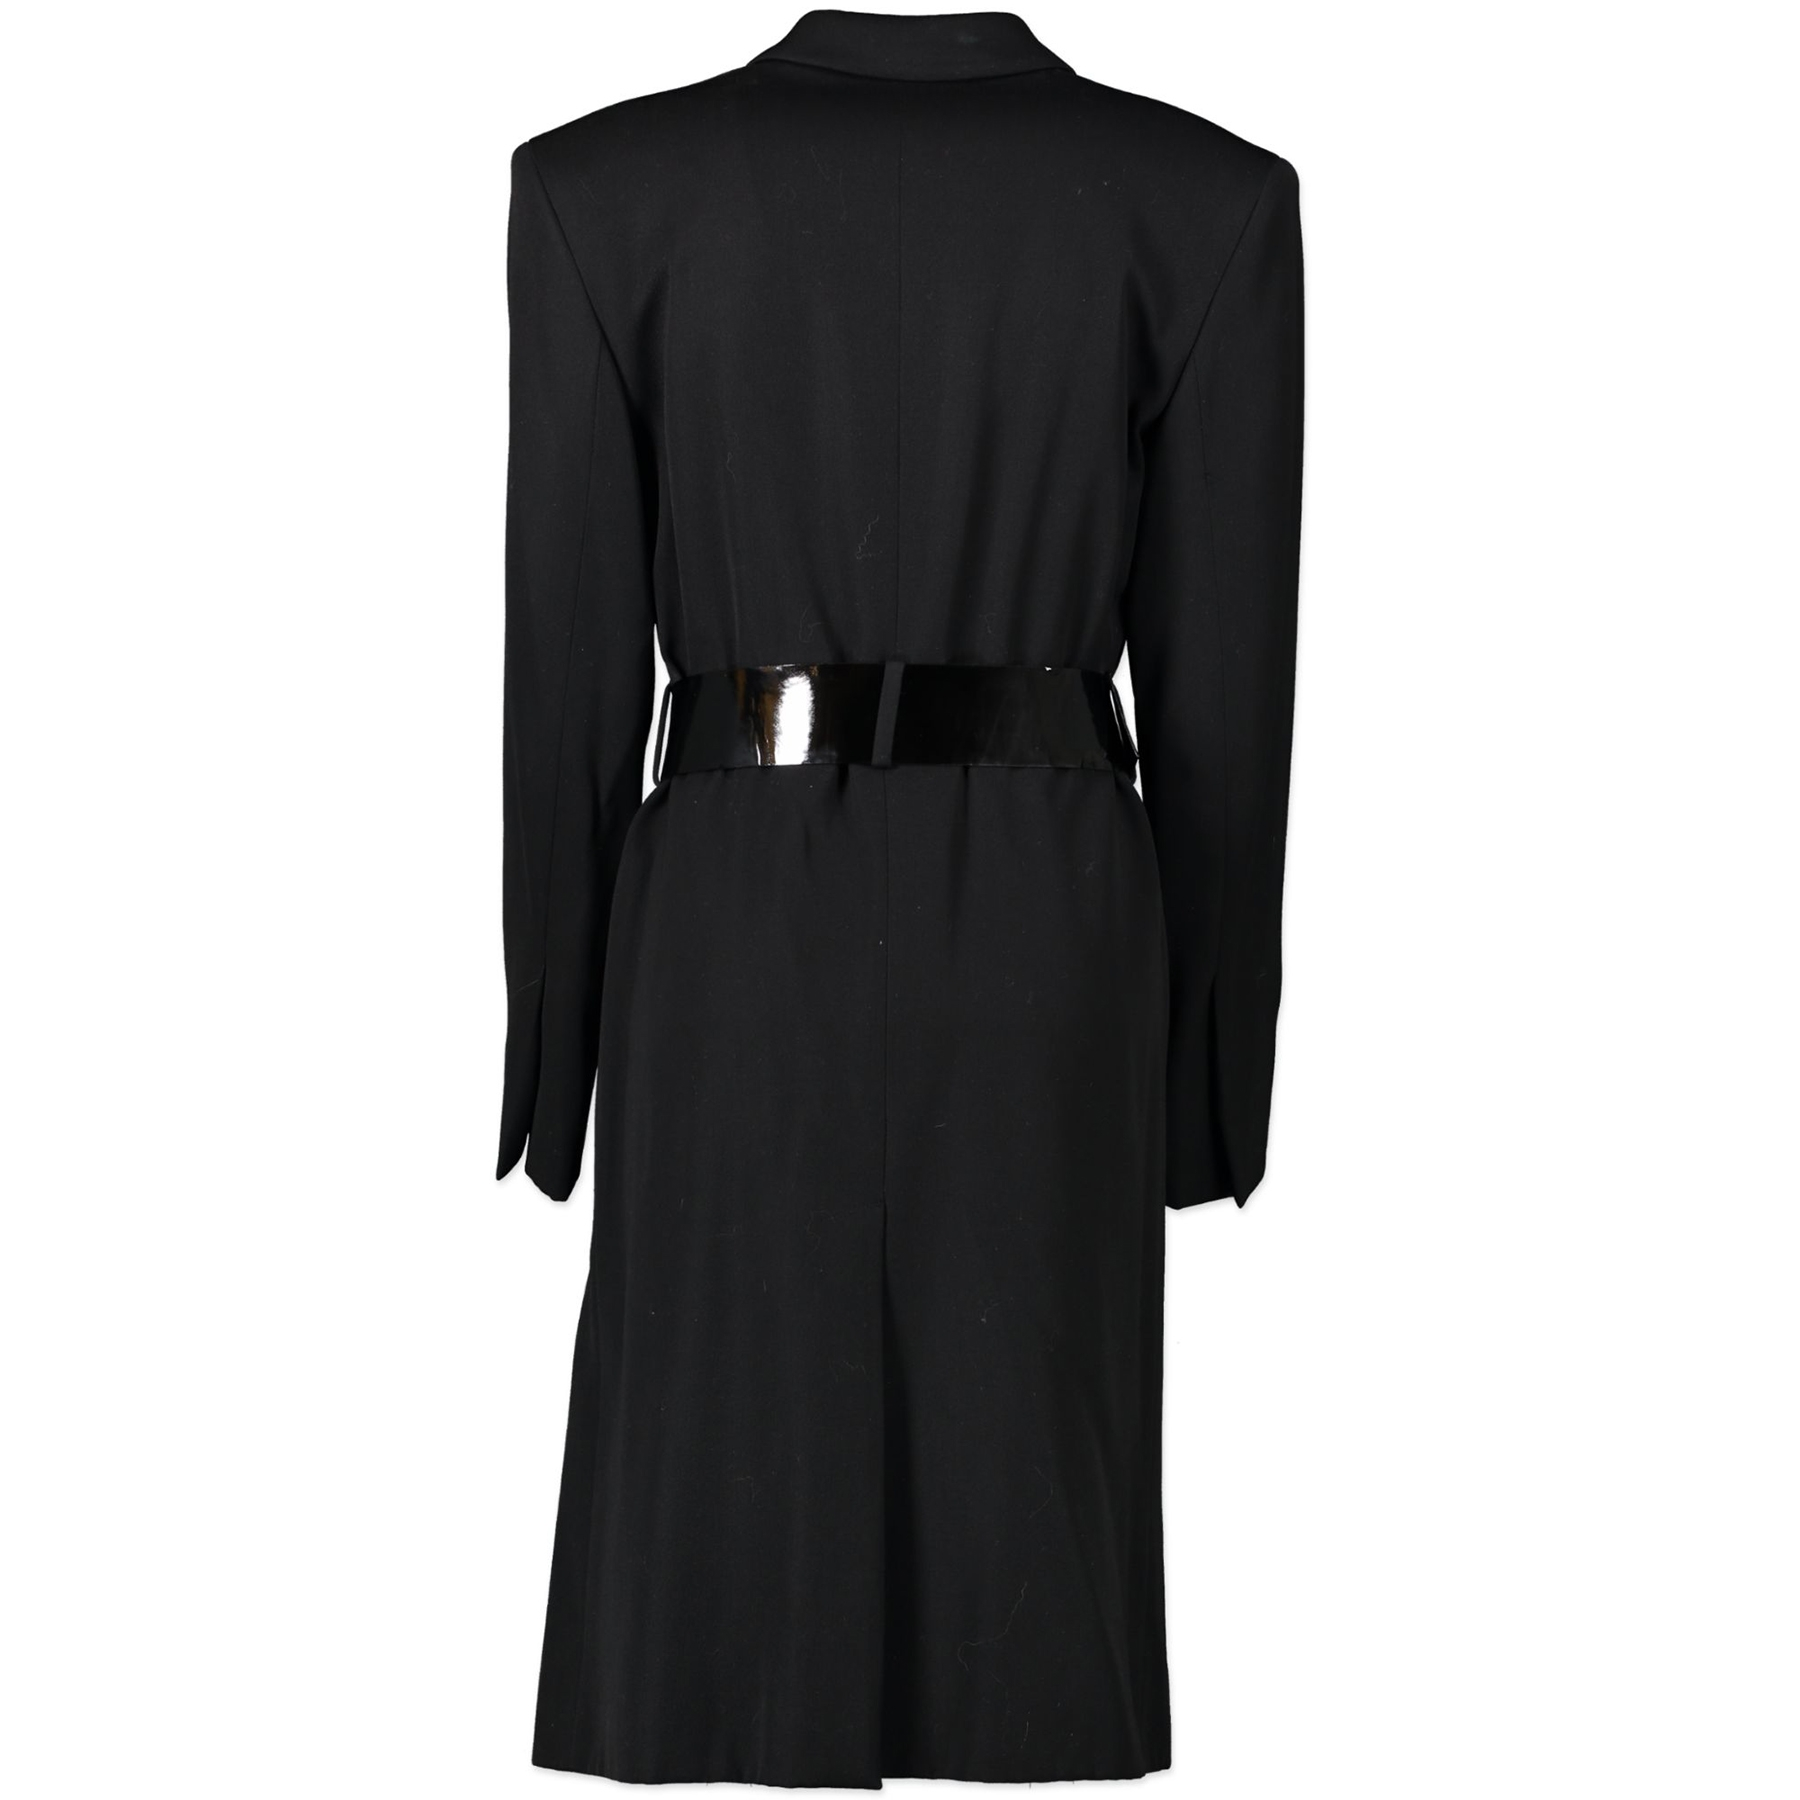 Buy Authentic secondhand Gucci Black Wool Blend Single Breasted Long Coat - Size 42 at the right price online safe and secure online webshop Luxery brand LabelLOV Antwerp Belgium